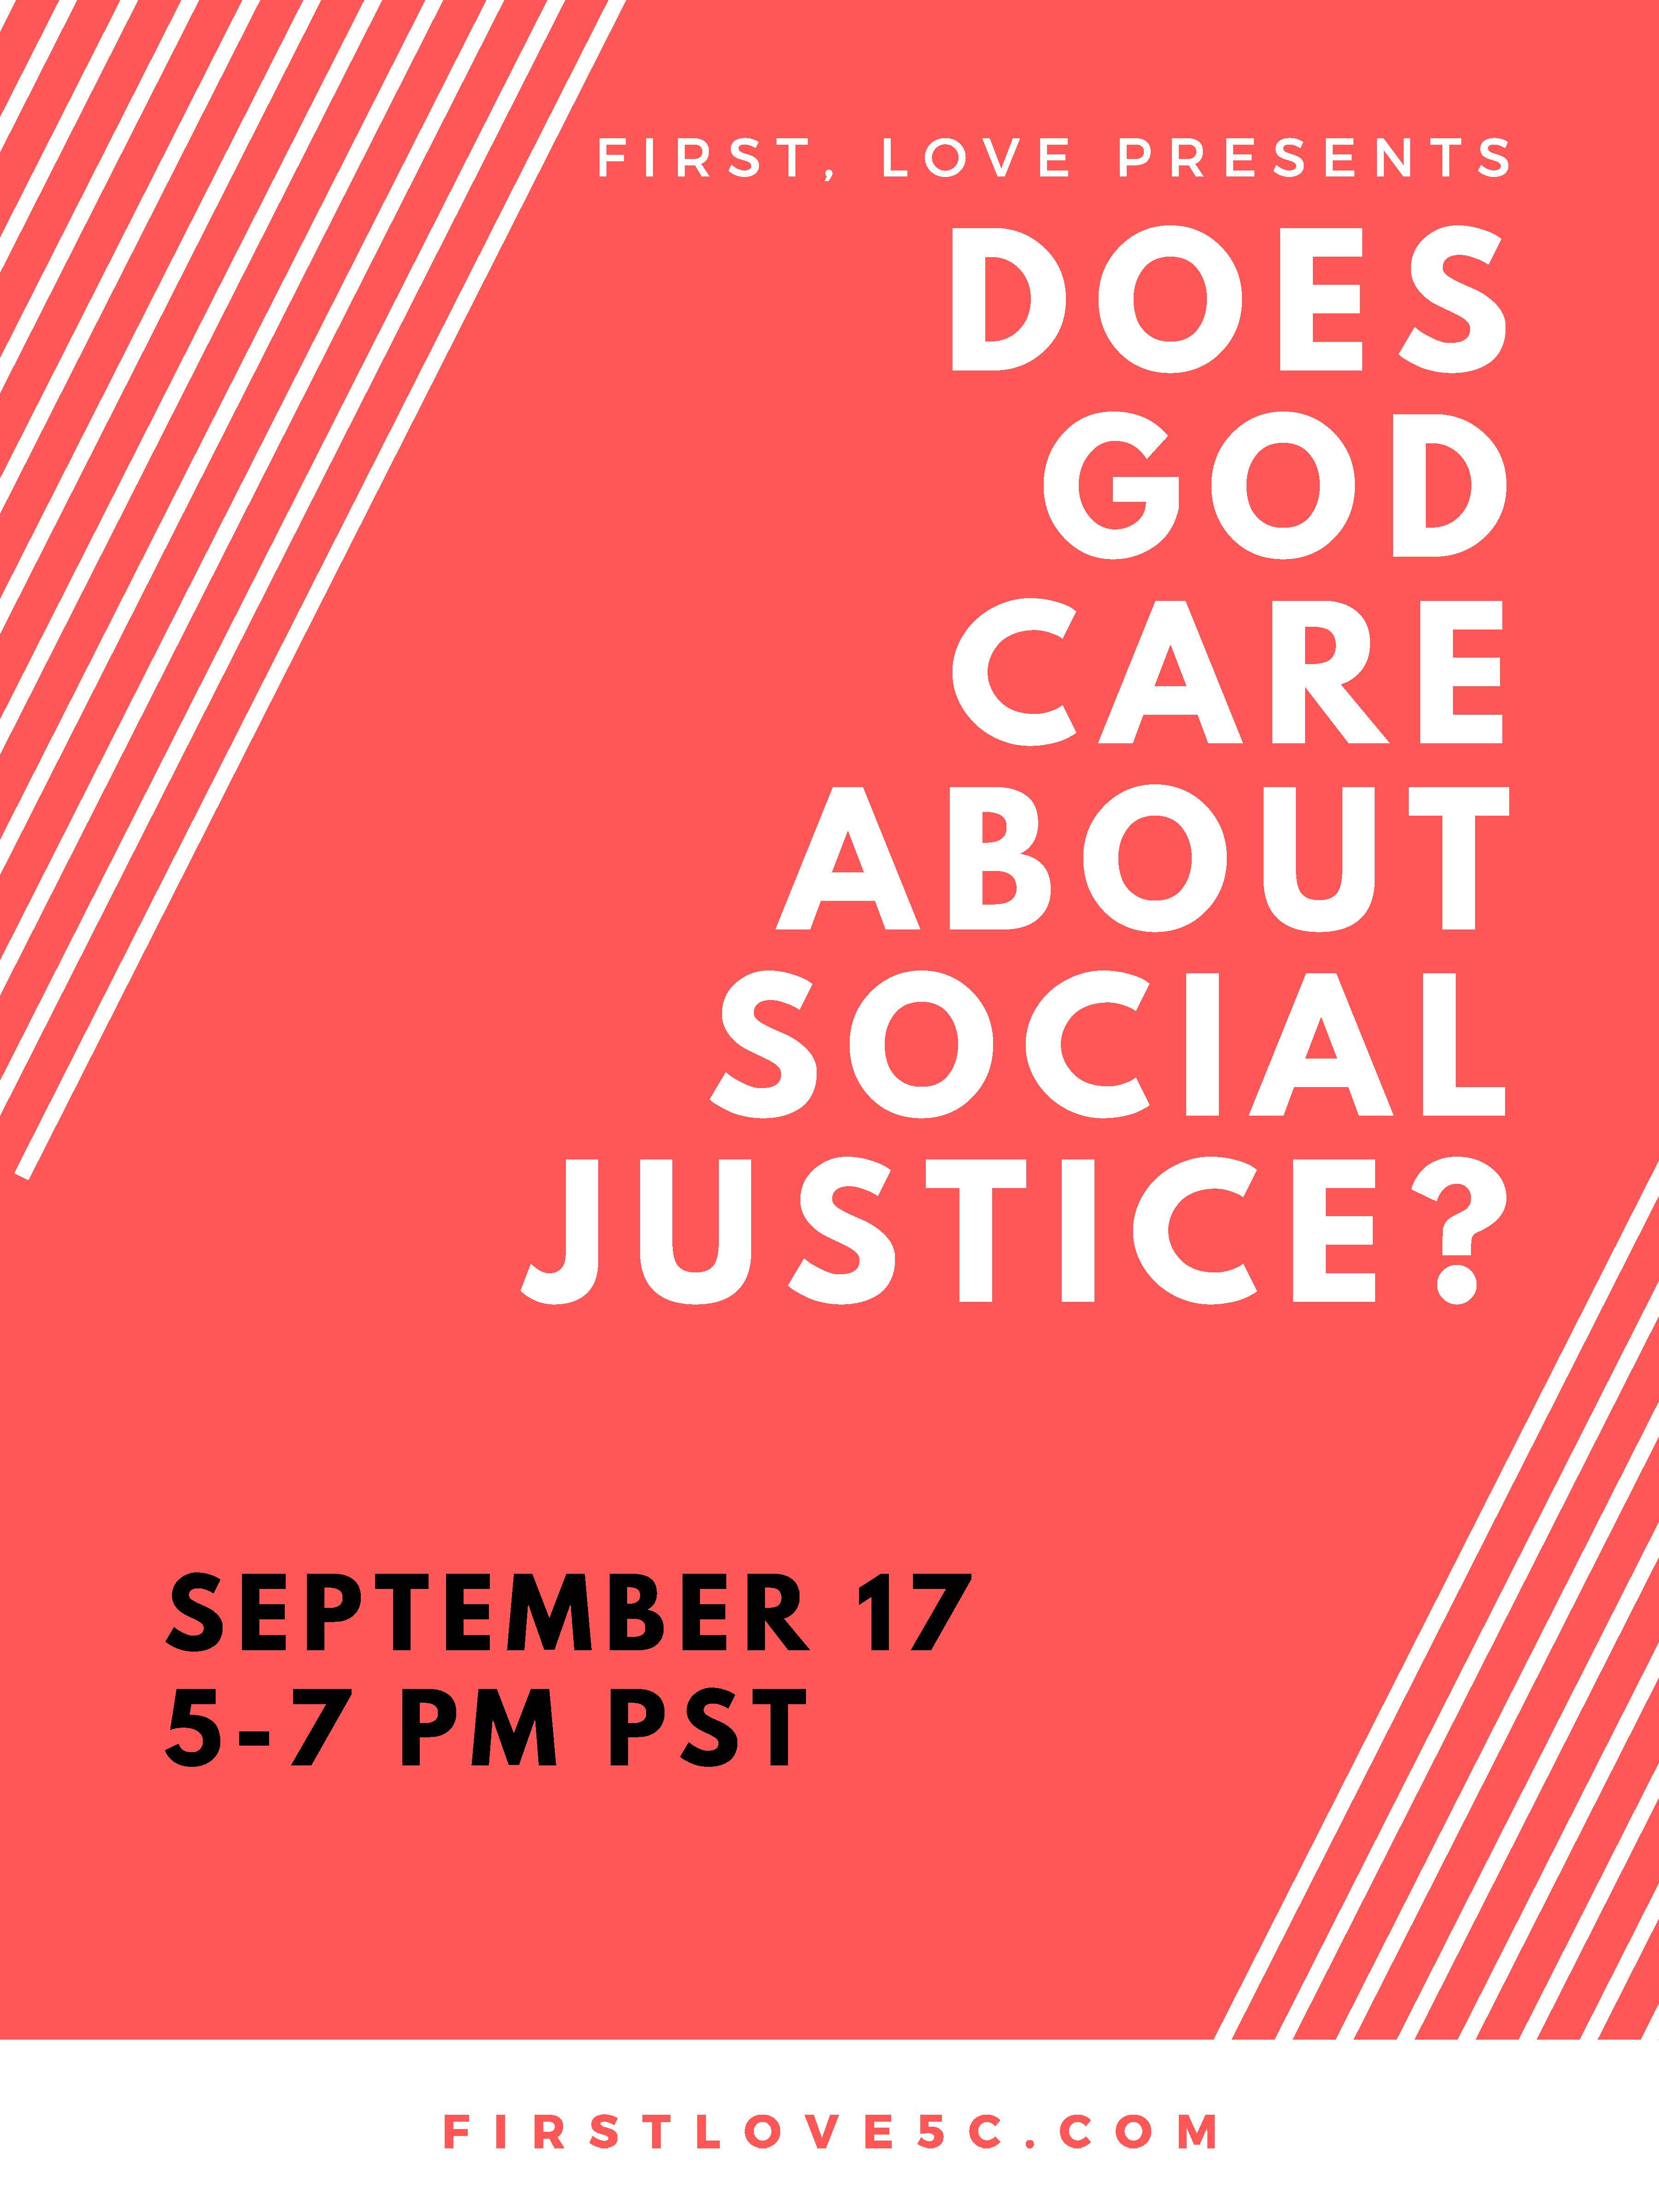 Flyer. First, Love presents Does God Care about Social Justice?